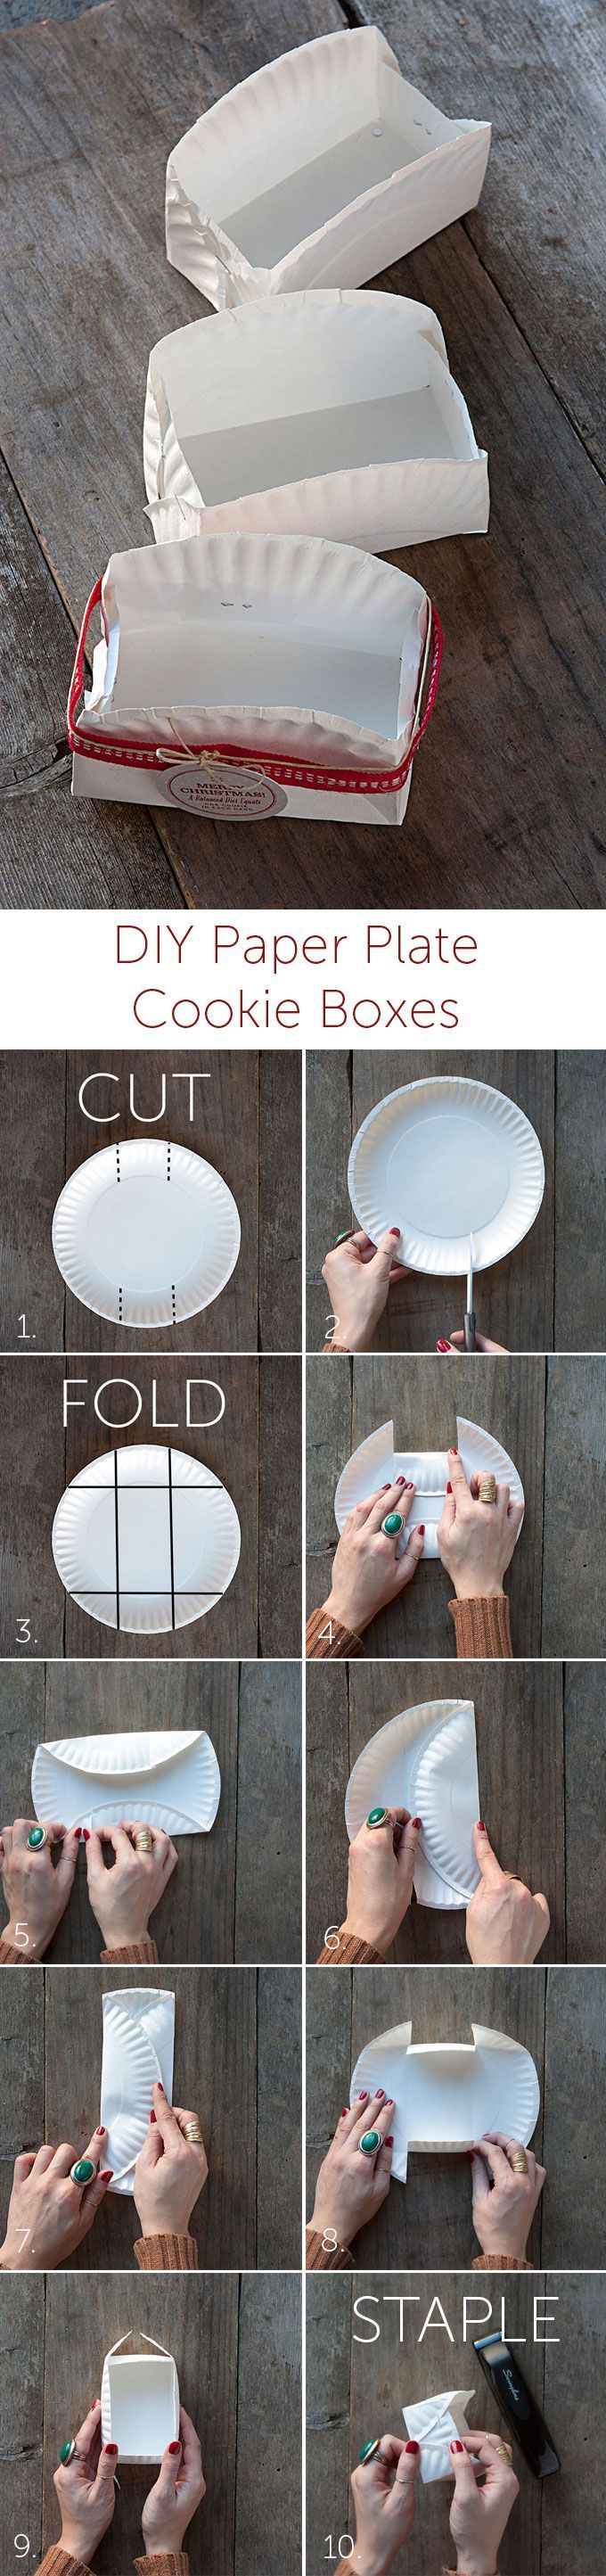 DIY Paper Plate Cookie Boxes | Evermine Blog | http://www.evermine.com #christmas #holidays